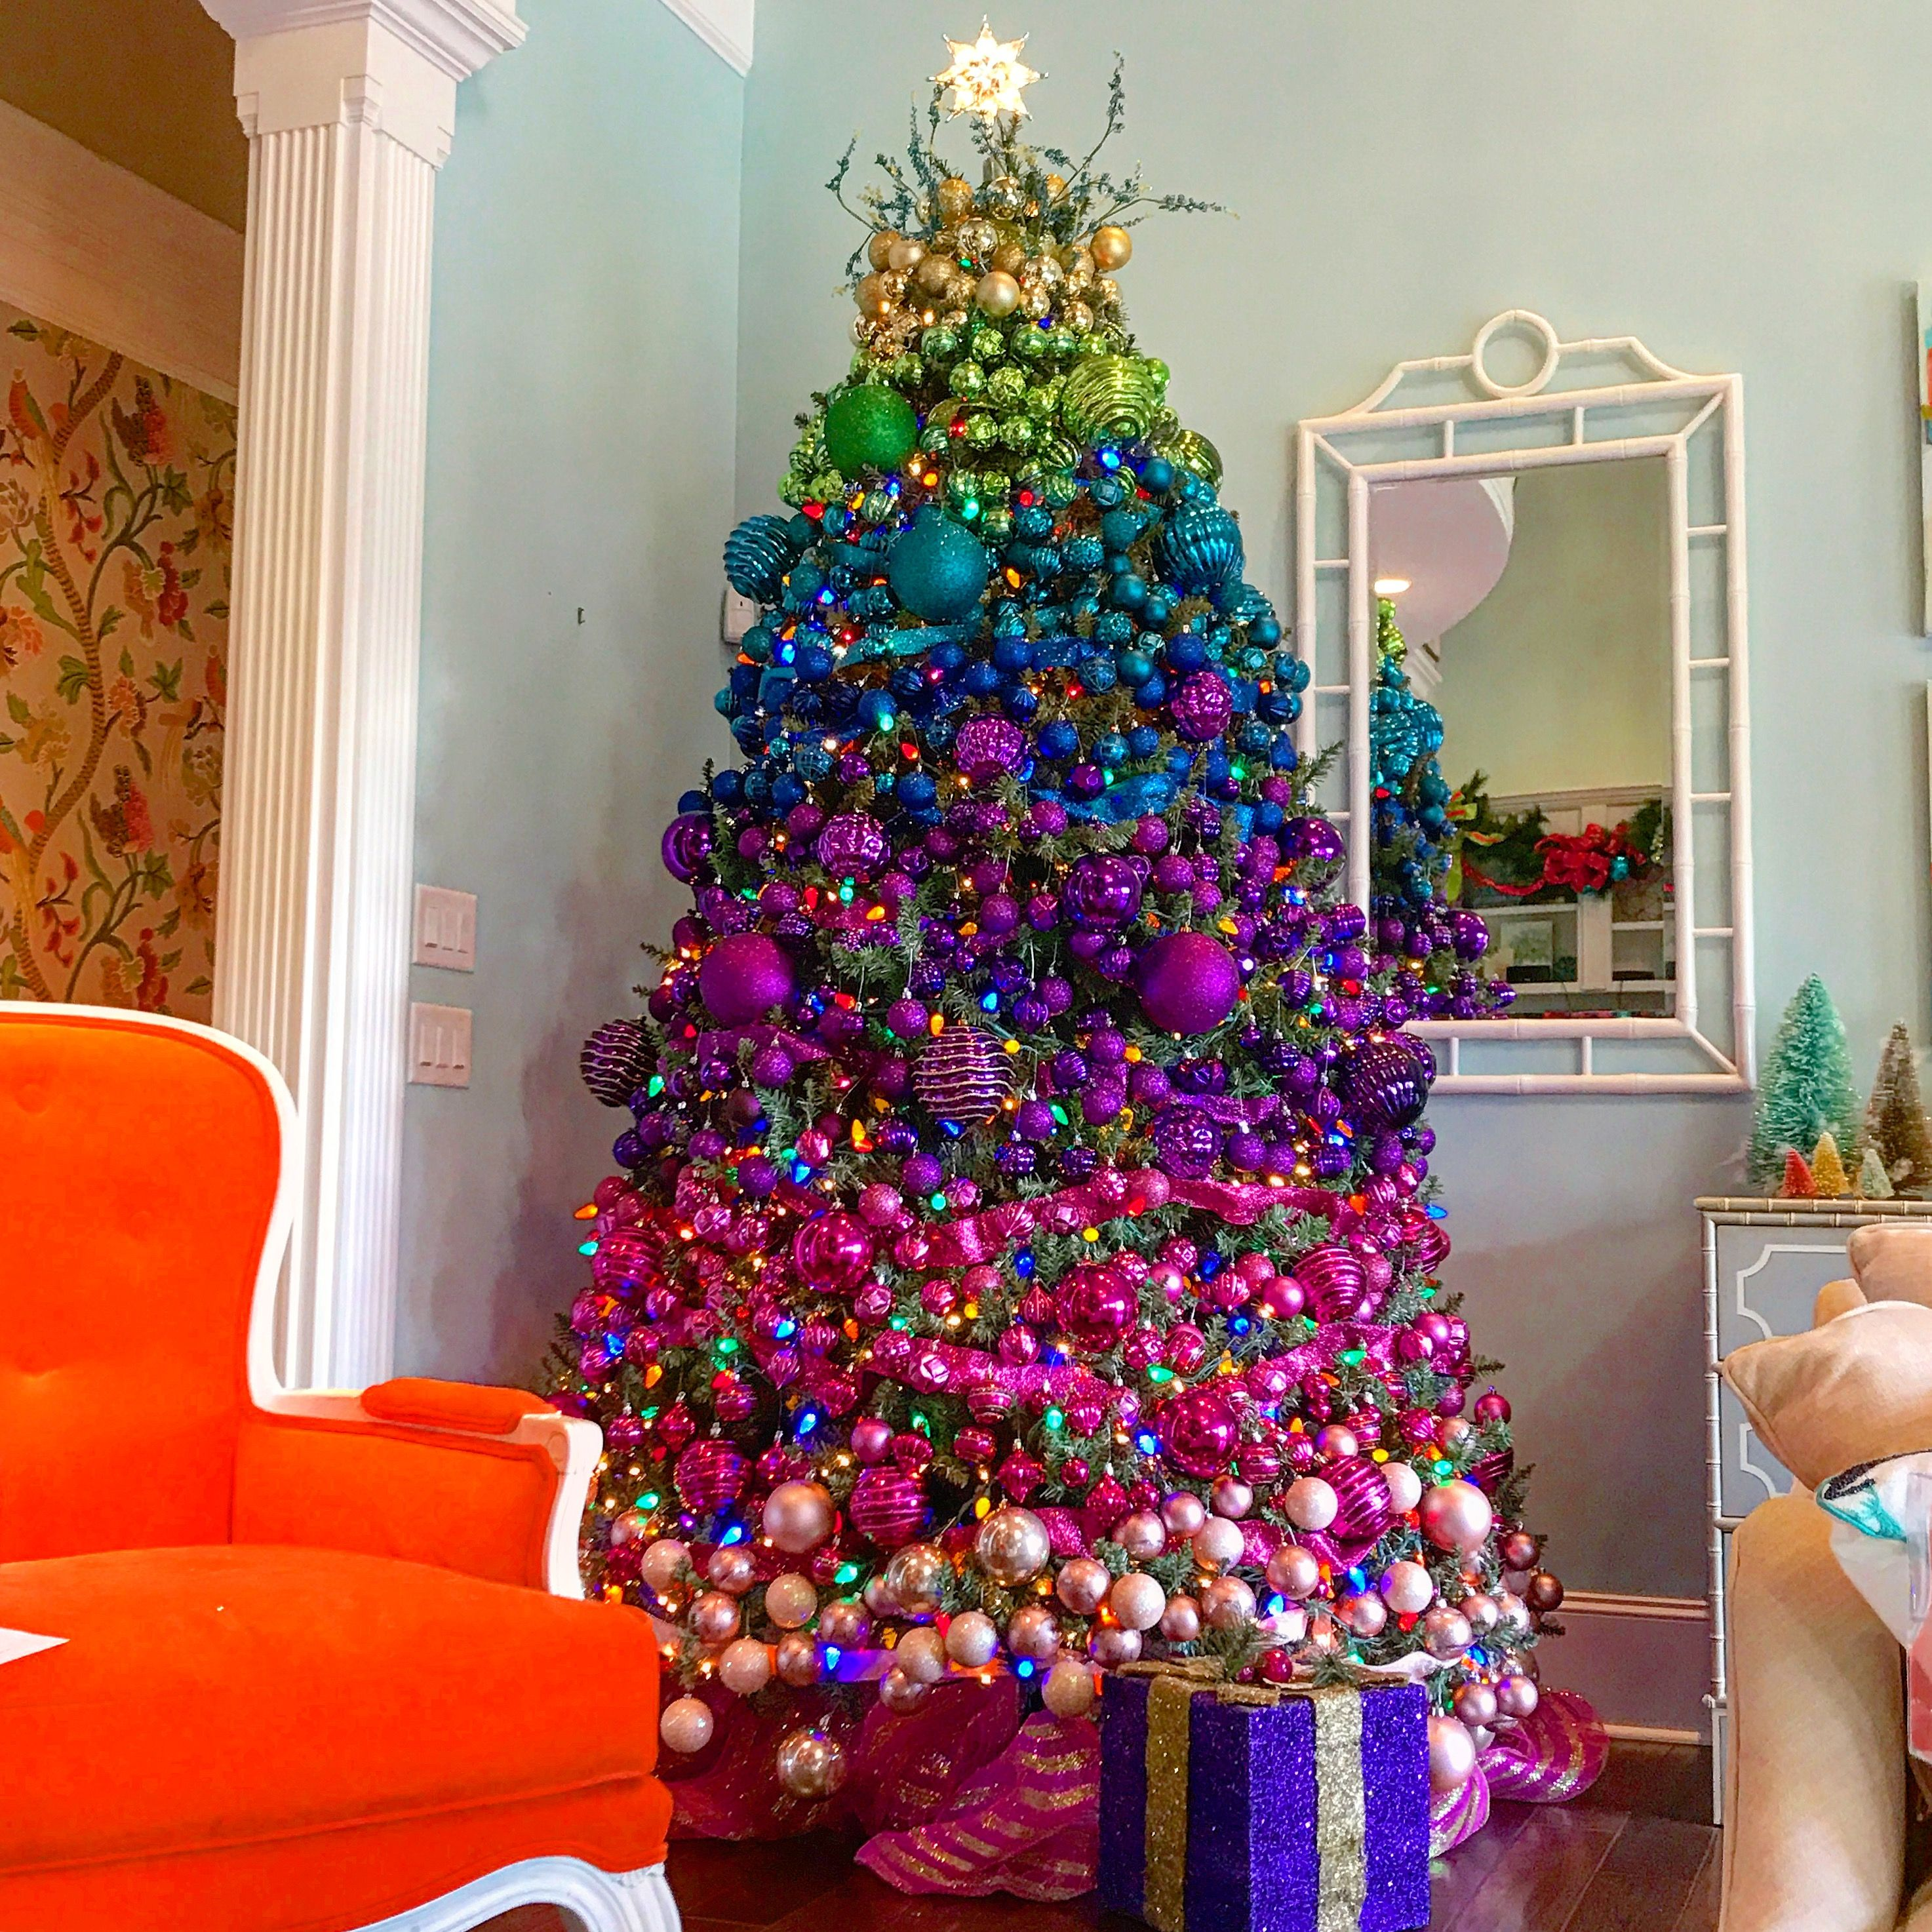 Rainbow Christmas Trees: Rainbow Christmas Tree Decor